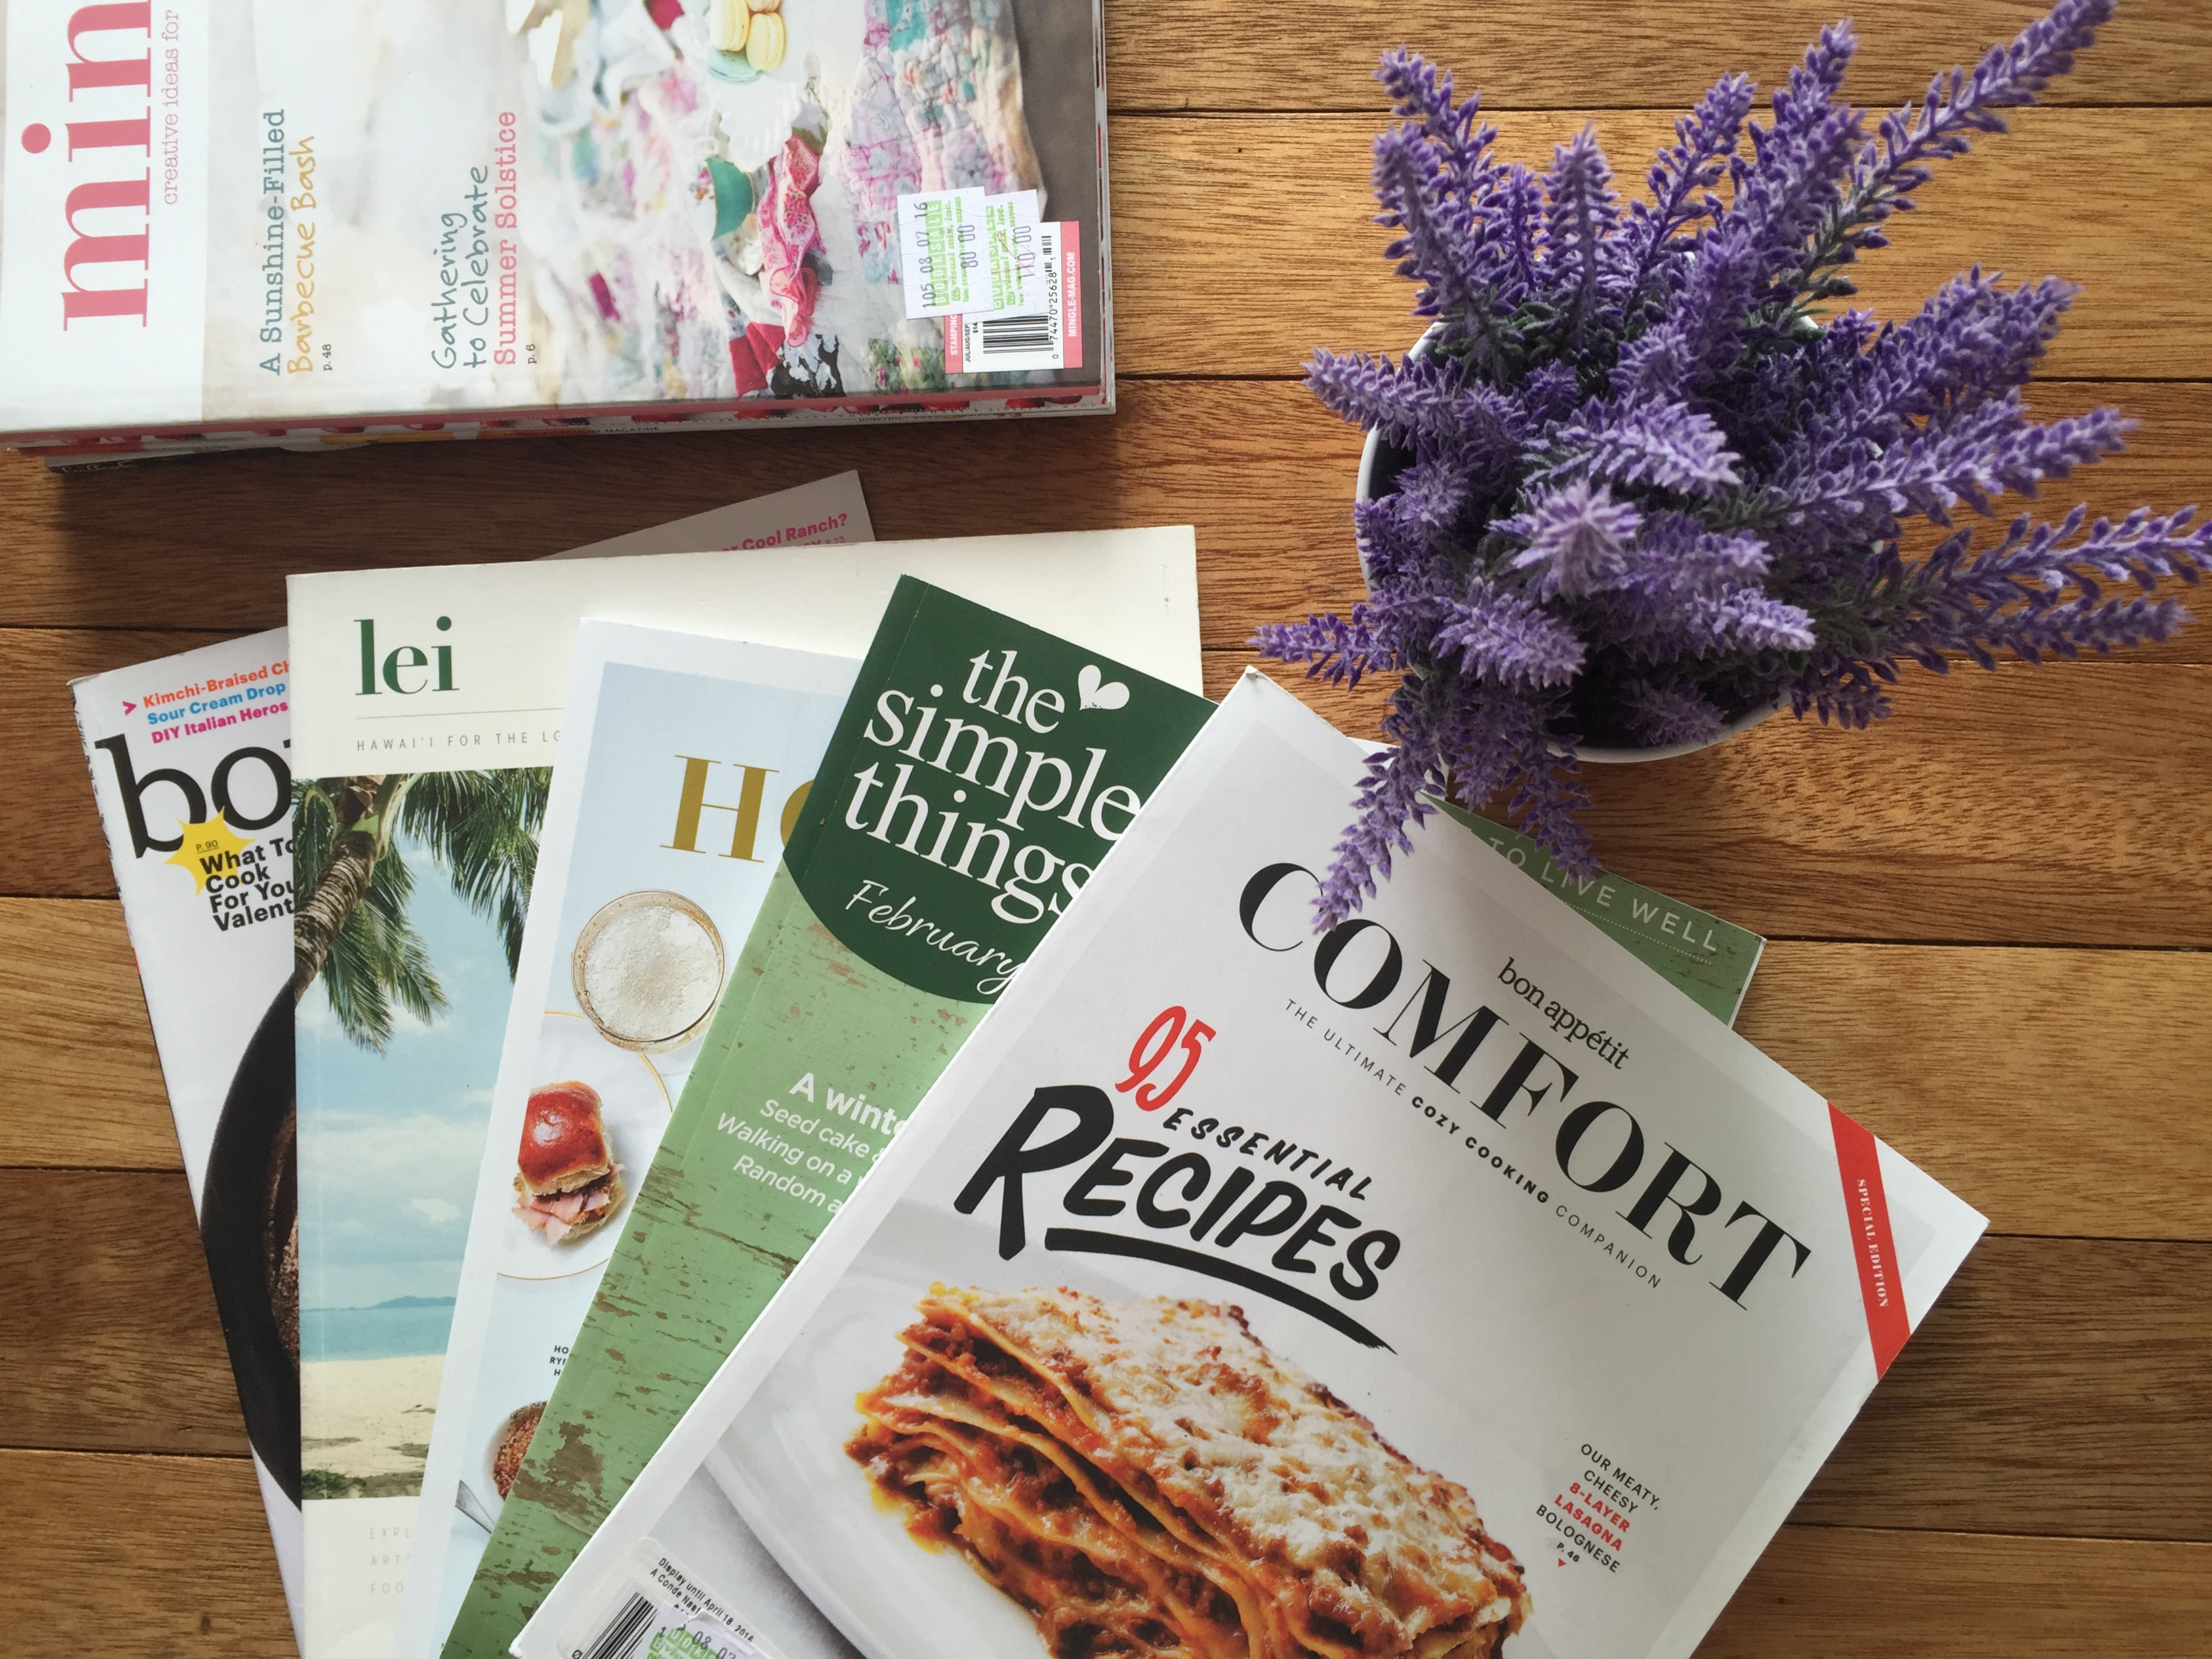 Find inspiration in magazines